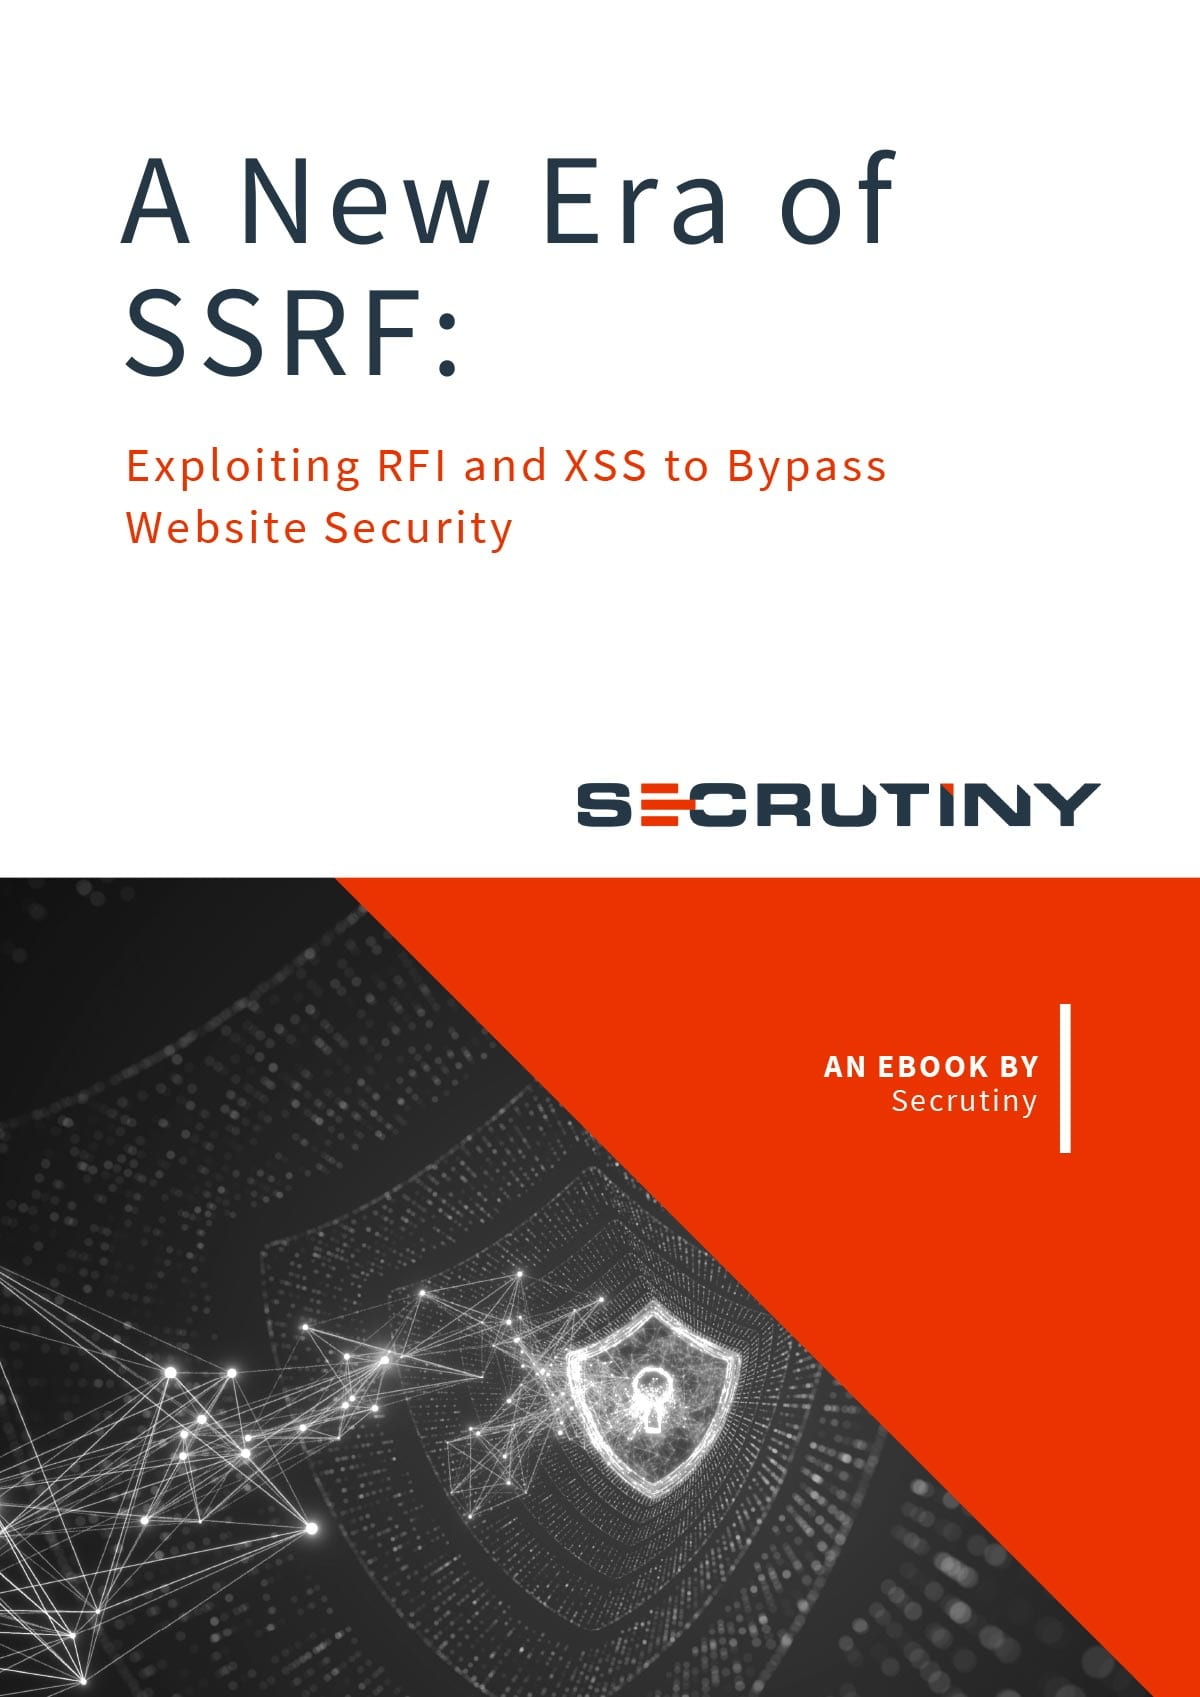 Secrutiny Cybersecurity - eBook - A New Era of SSRF: Exploiting RFI and XSS to Bypass Webs